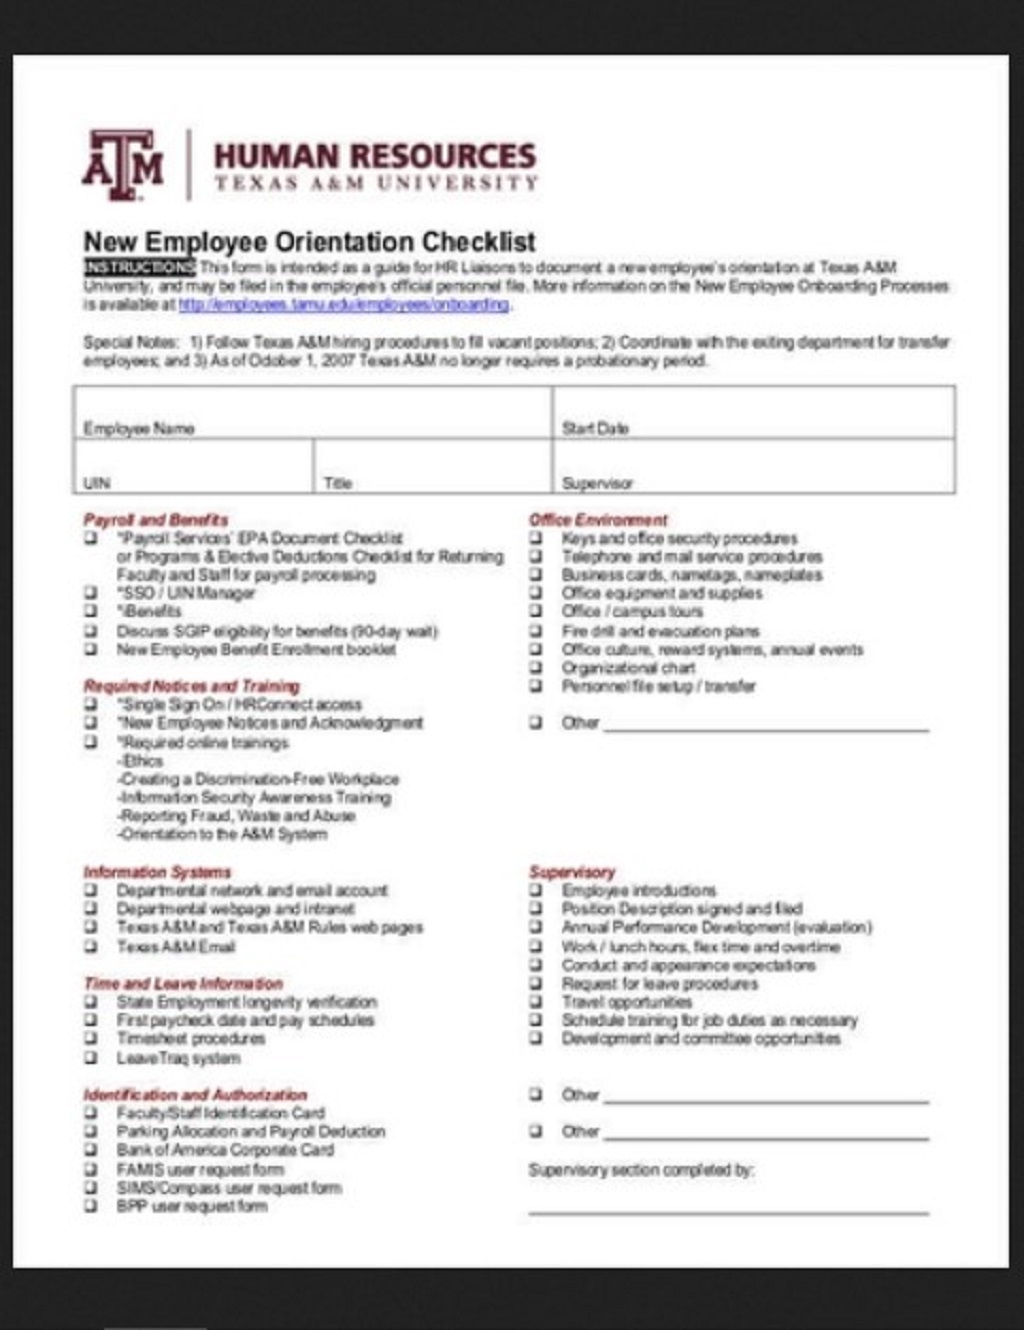 HR New Employee Orientation Checklist Template Example Form Hr Daily For Audit Strategies Startups Excel Documents  Examples Large